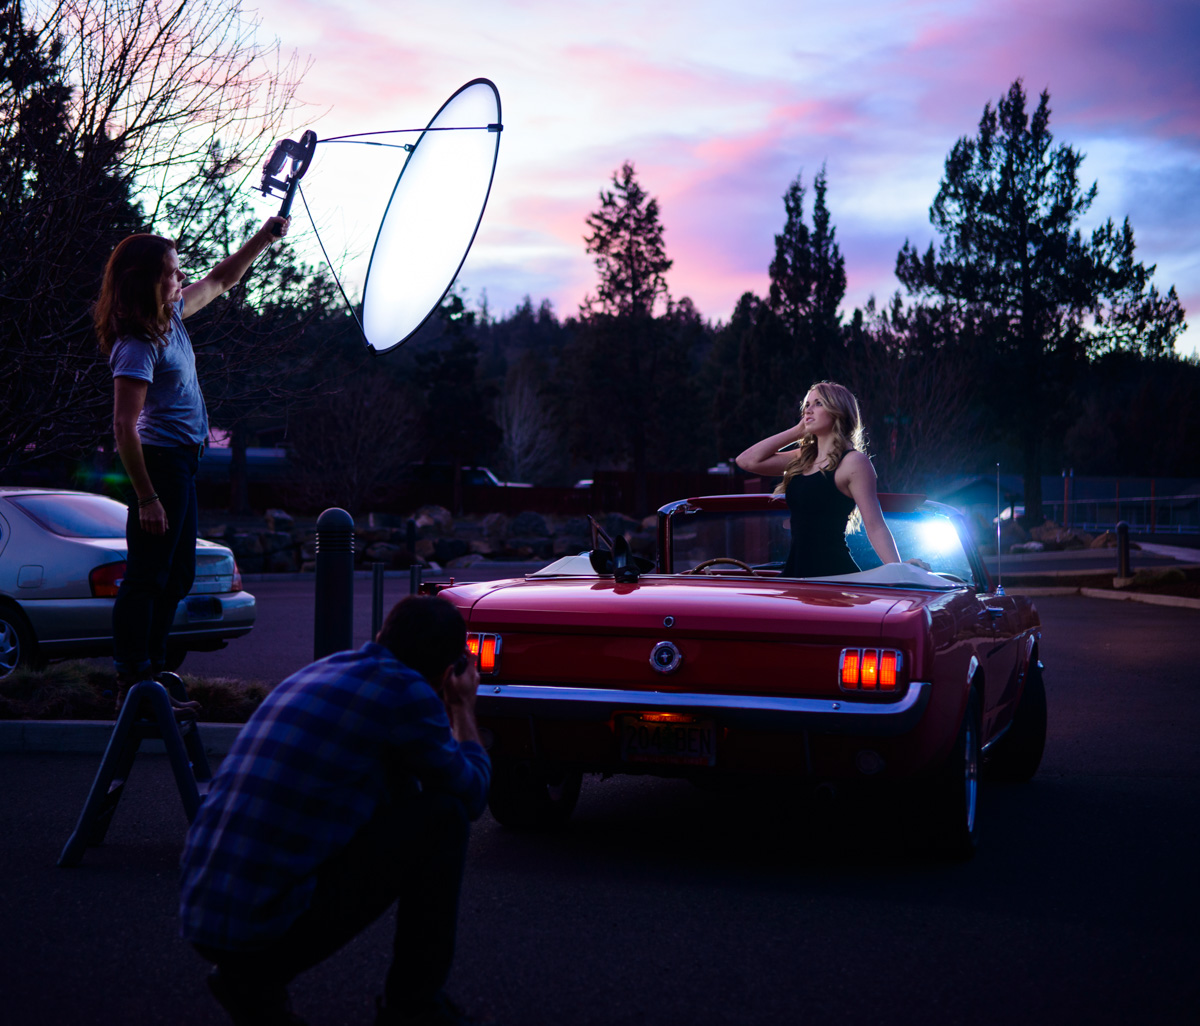 a second speedlight was placed on the hood of the car for an edge light